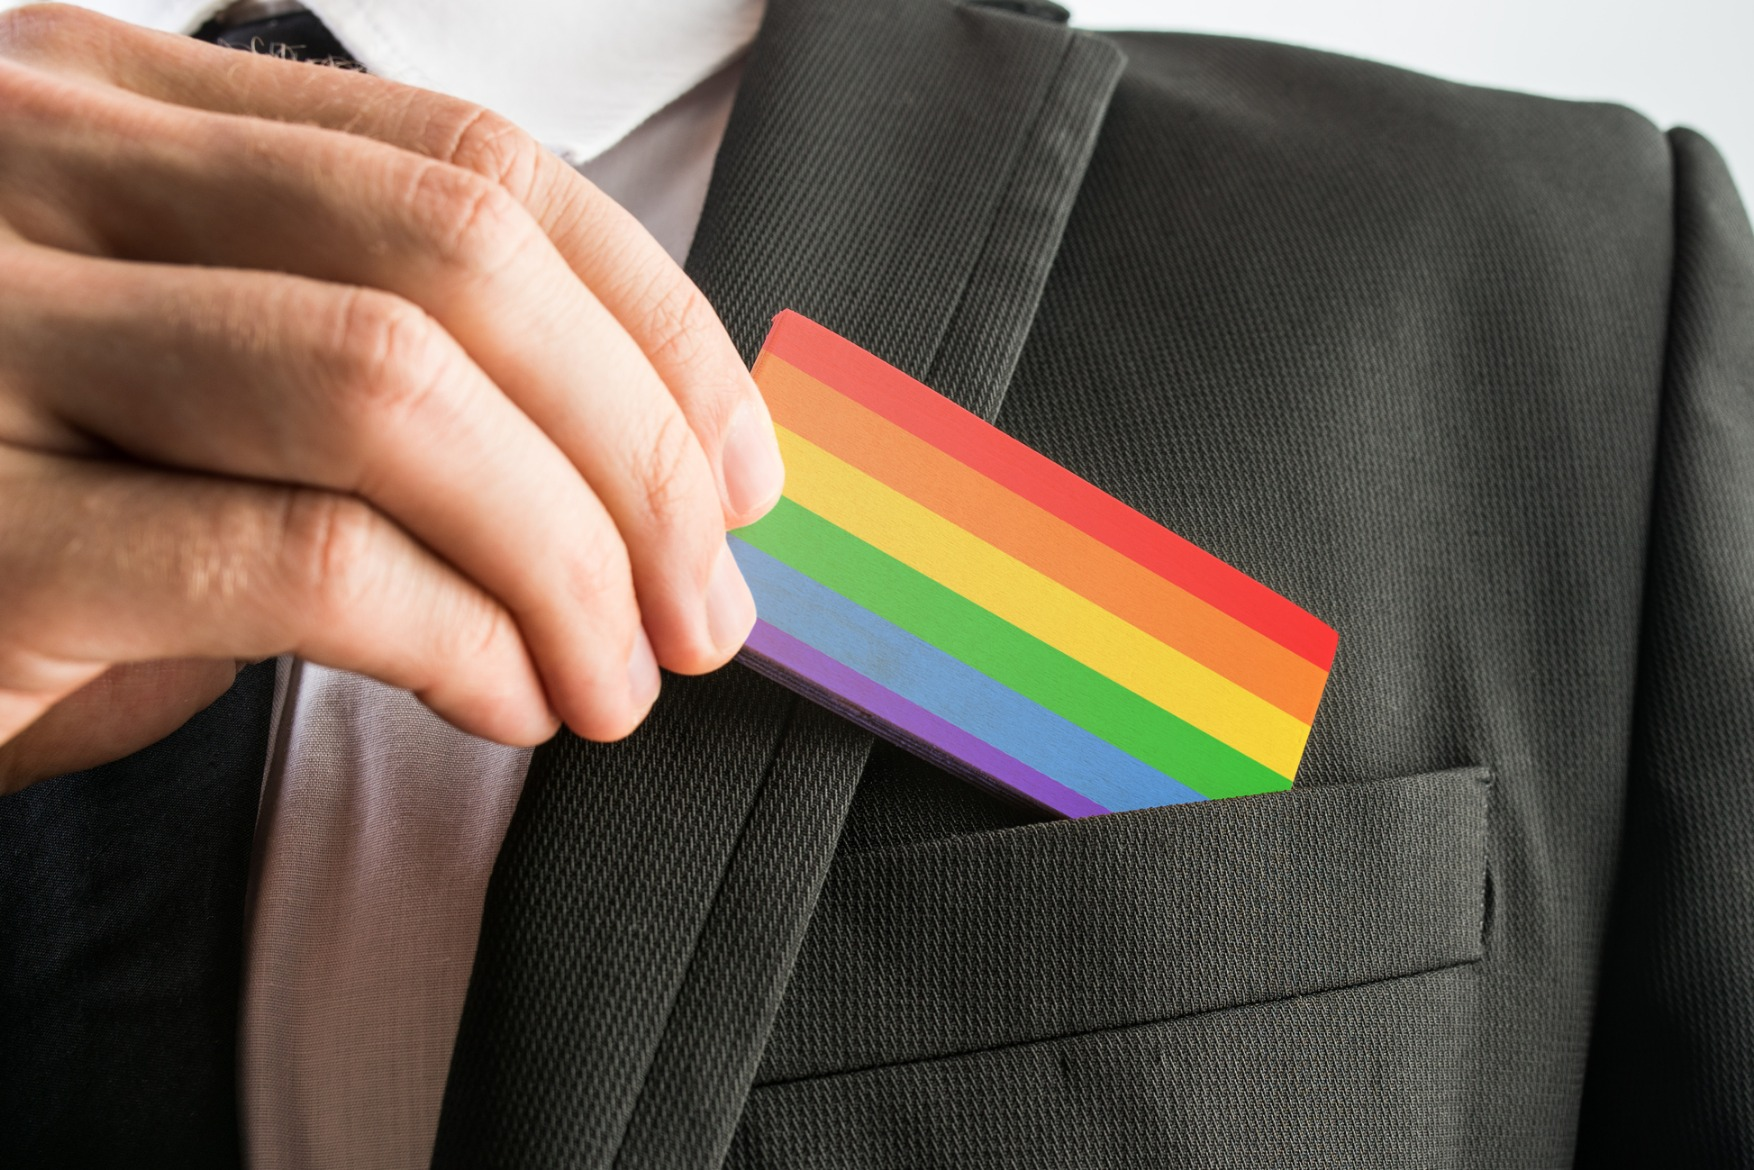 Person putting rainbow card in business suit jacket pocket